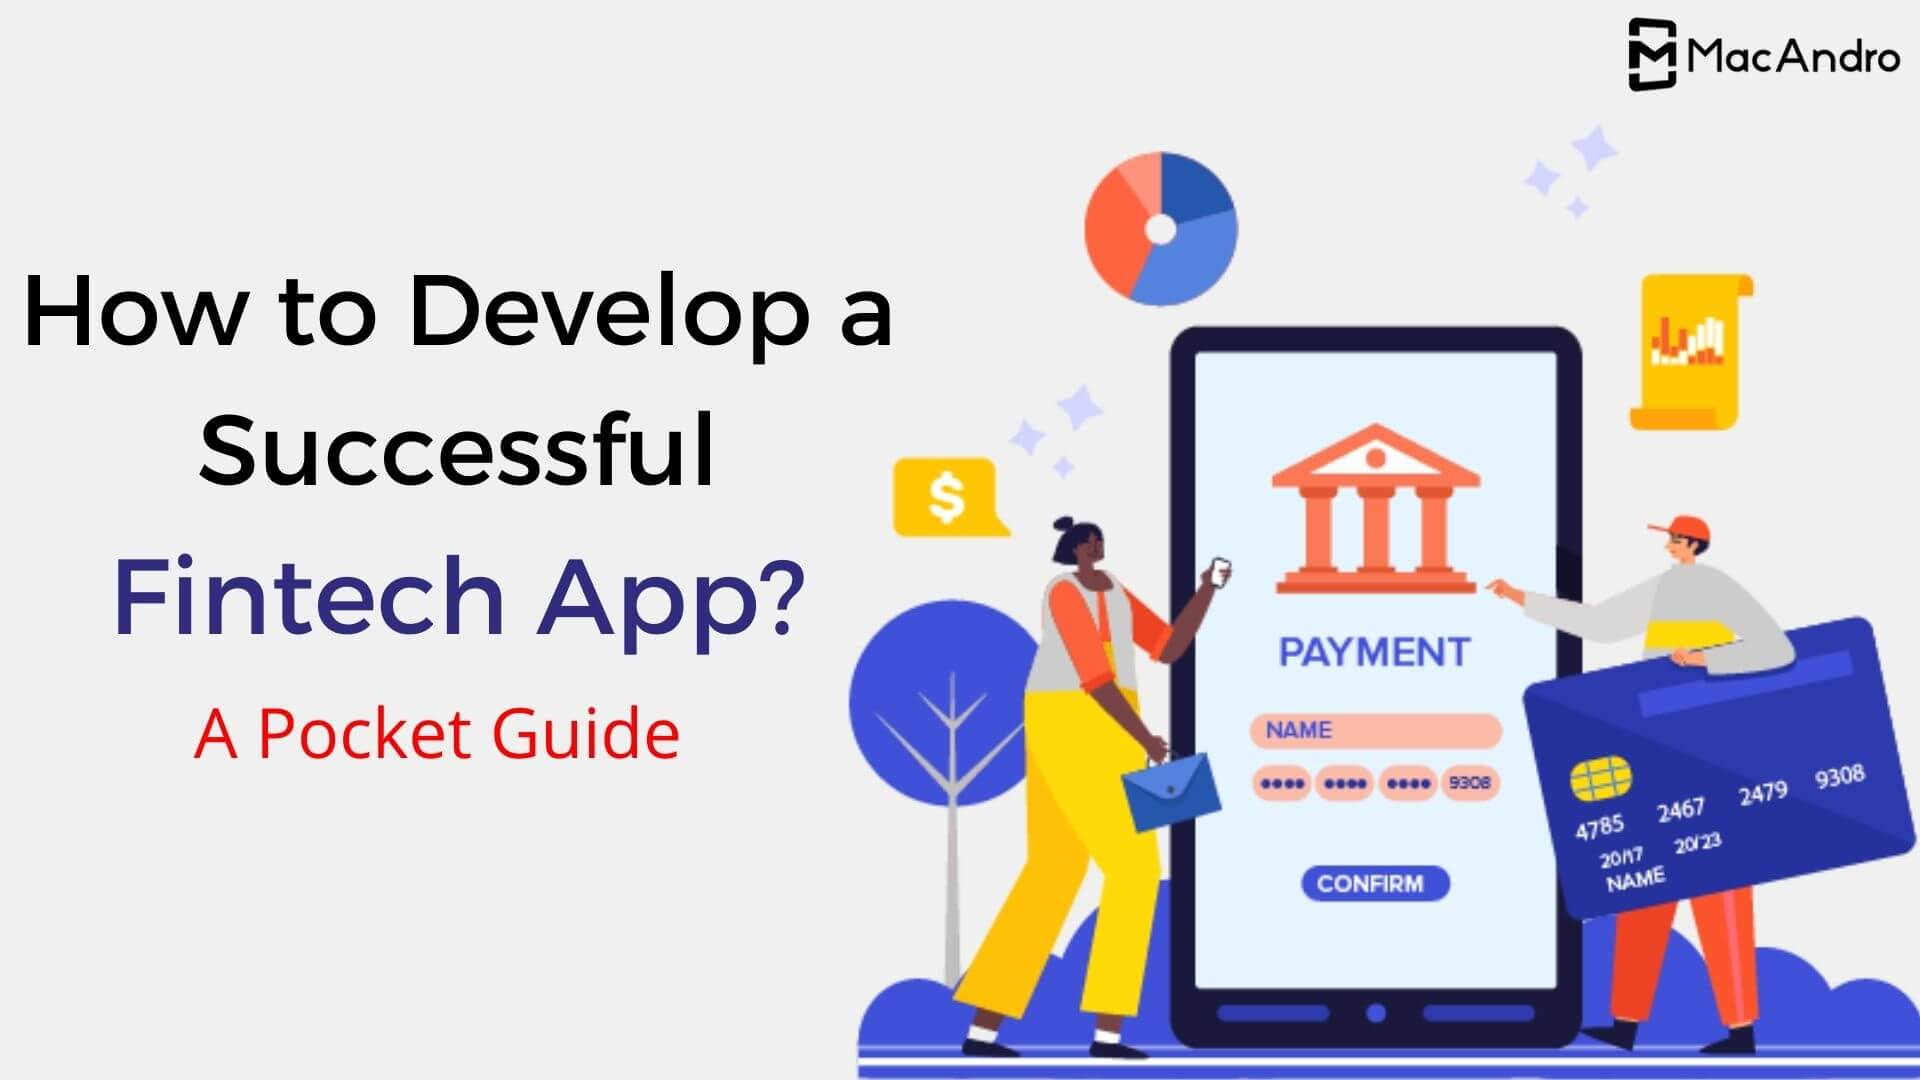 How to Build a Successful Fintech App? - A Pocket Guide